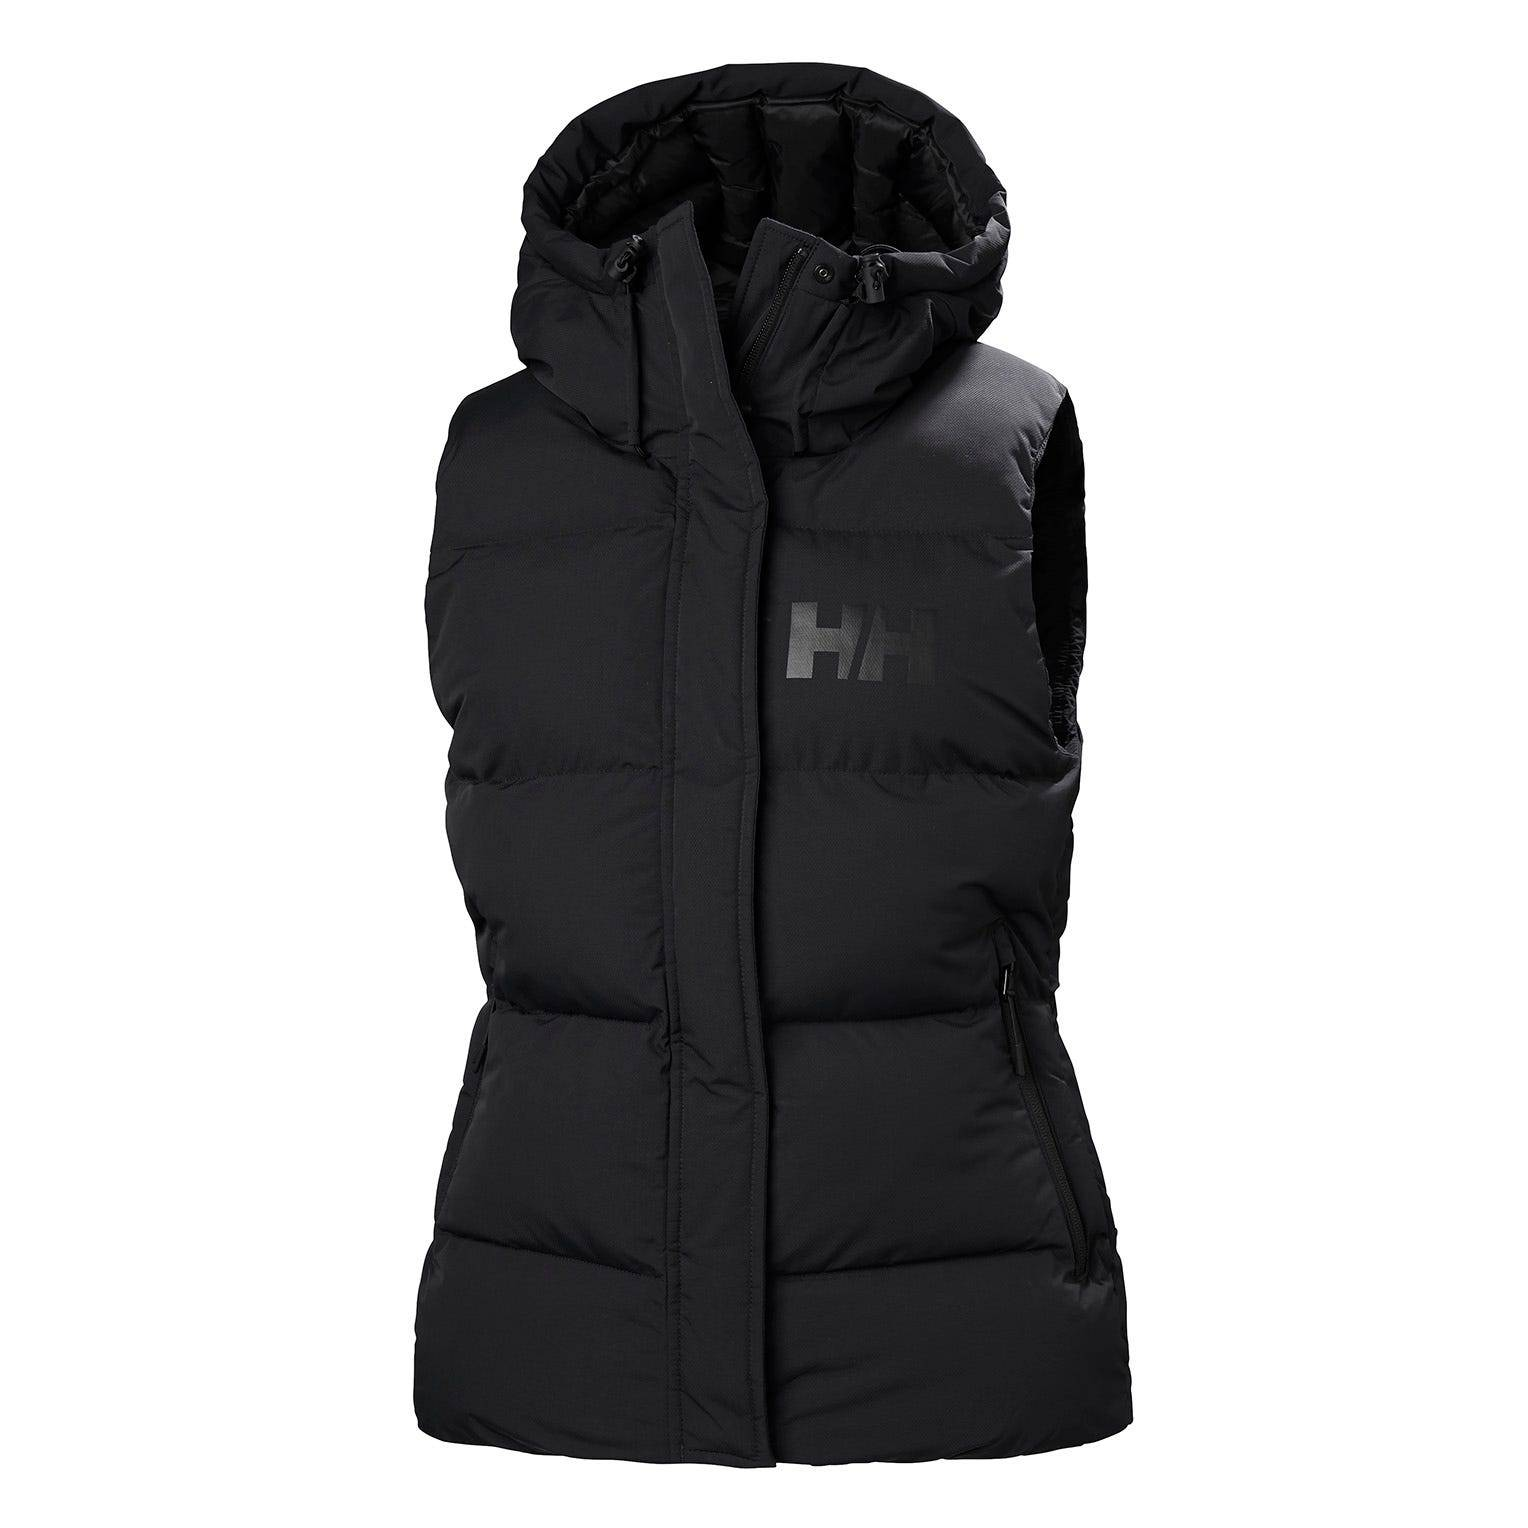 Helly Hansen W Nova Puffy Vest Womens Midlayer Black XL